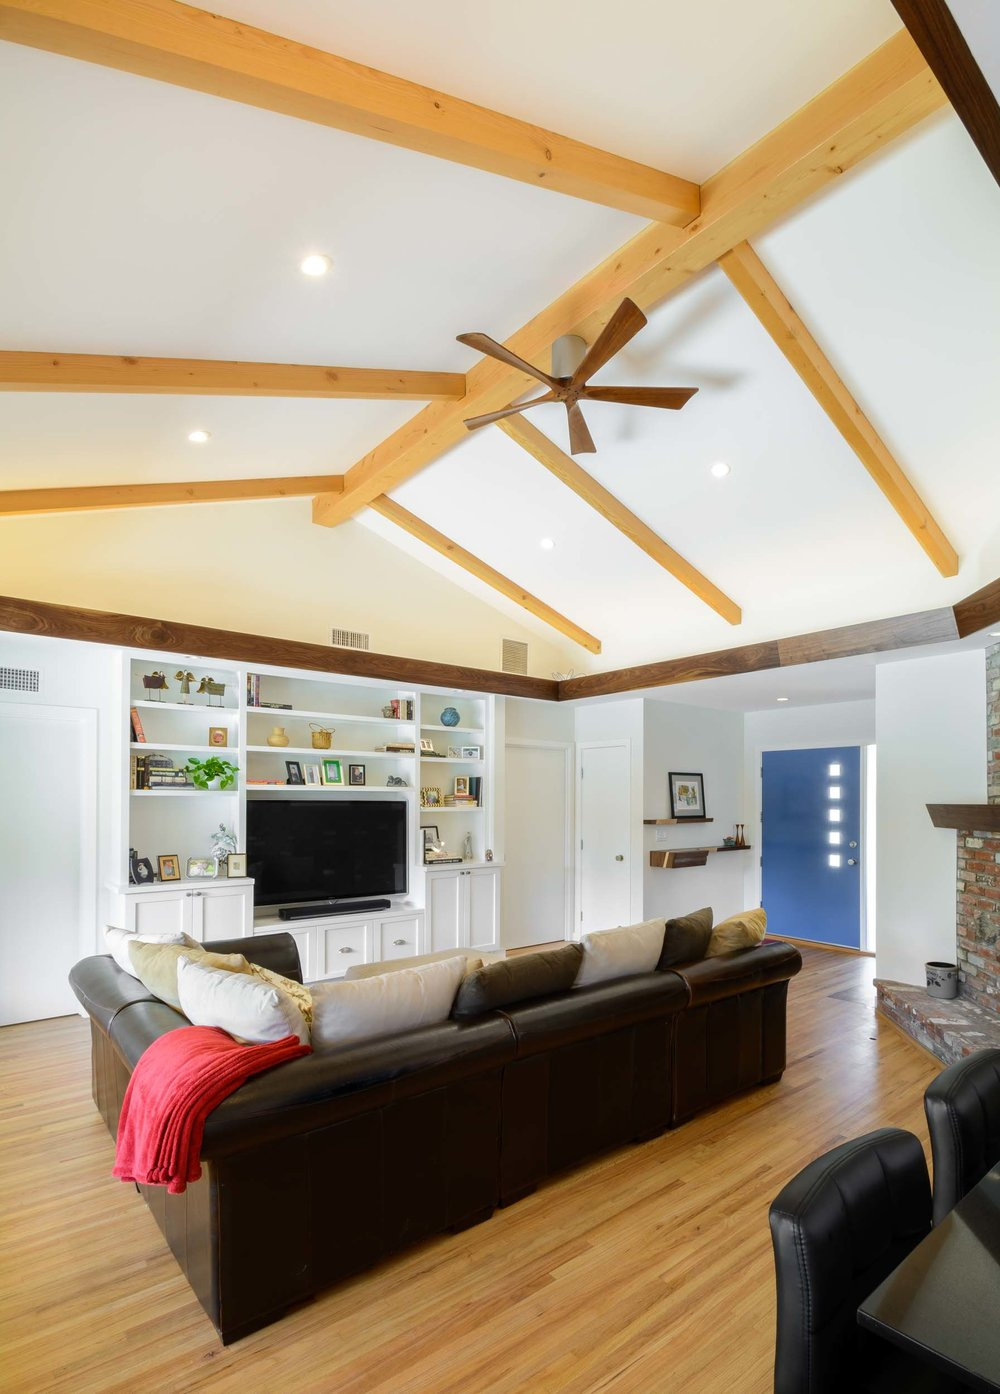 Whole house remodel with vaulted ceiling